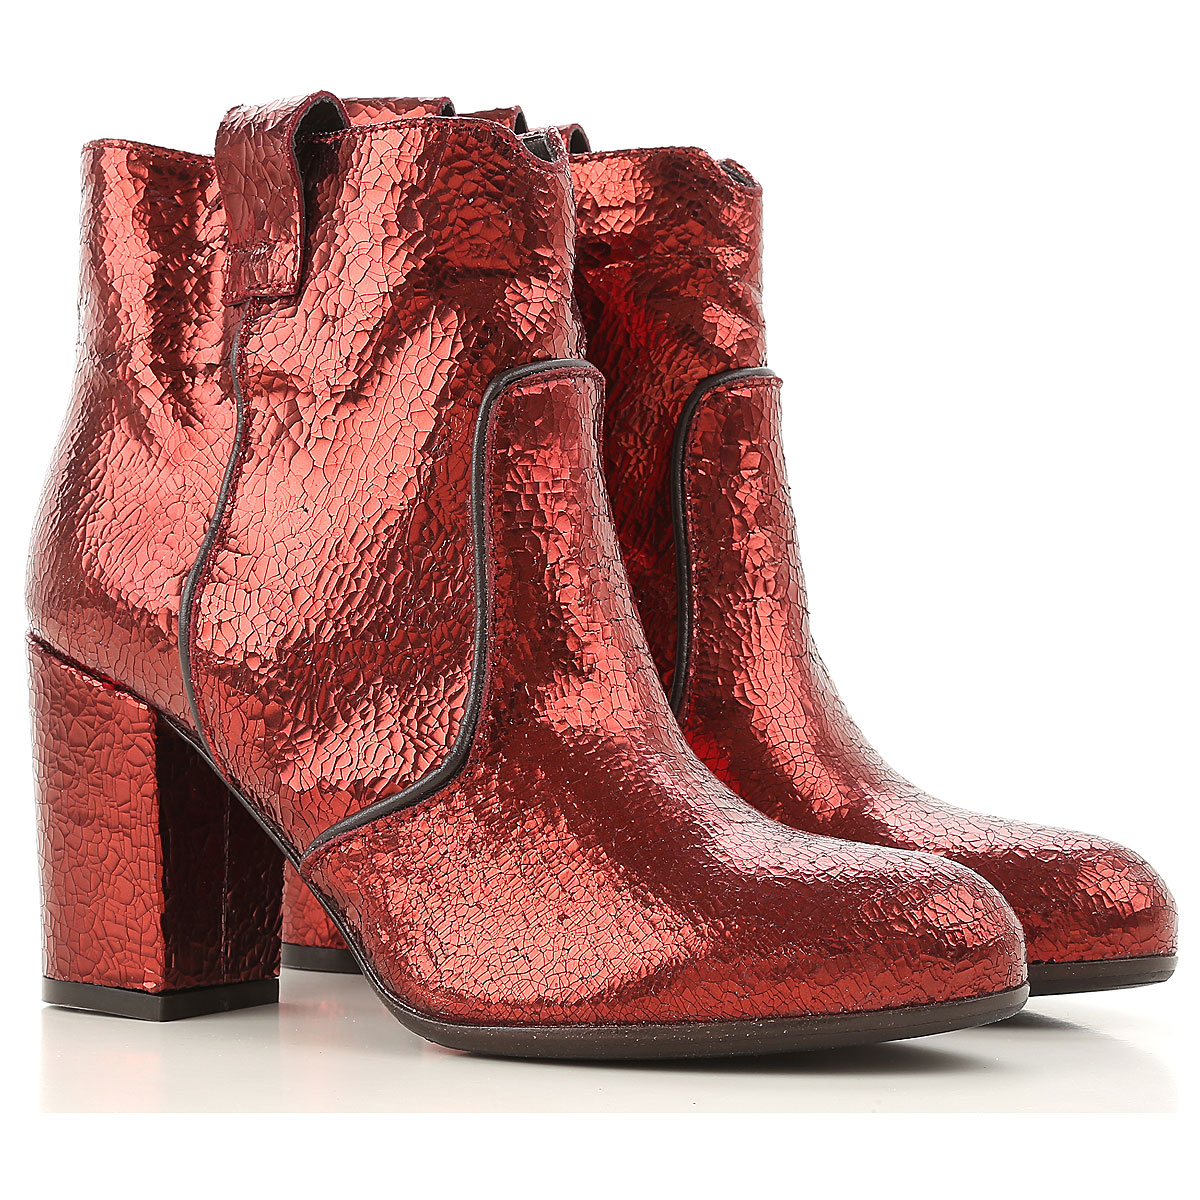 Paris Texas Boots for Women, Booties On Sale in Outlet, Rust, lame, 2019, 5.5 6